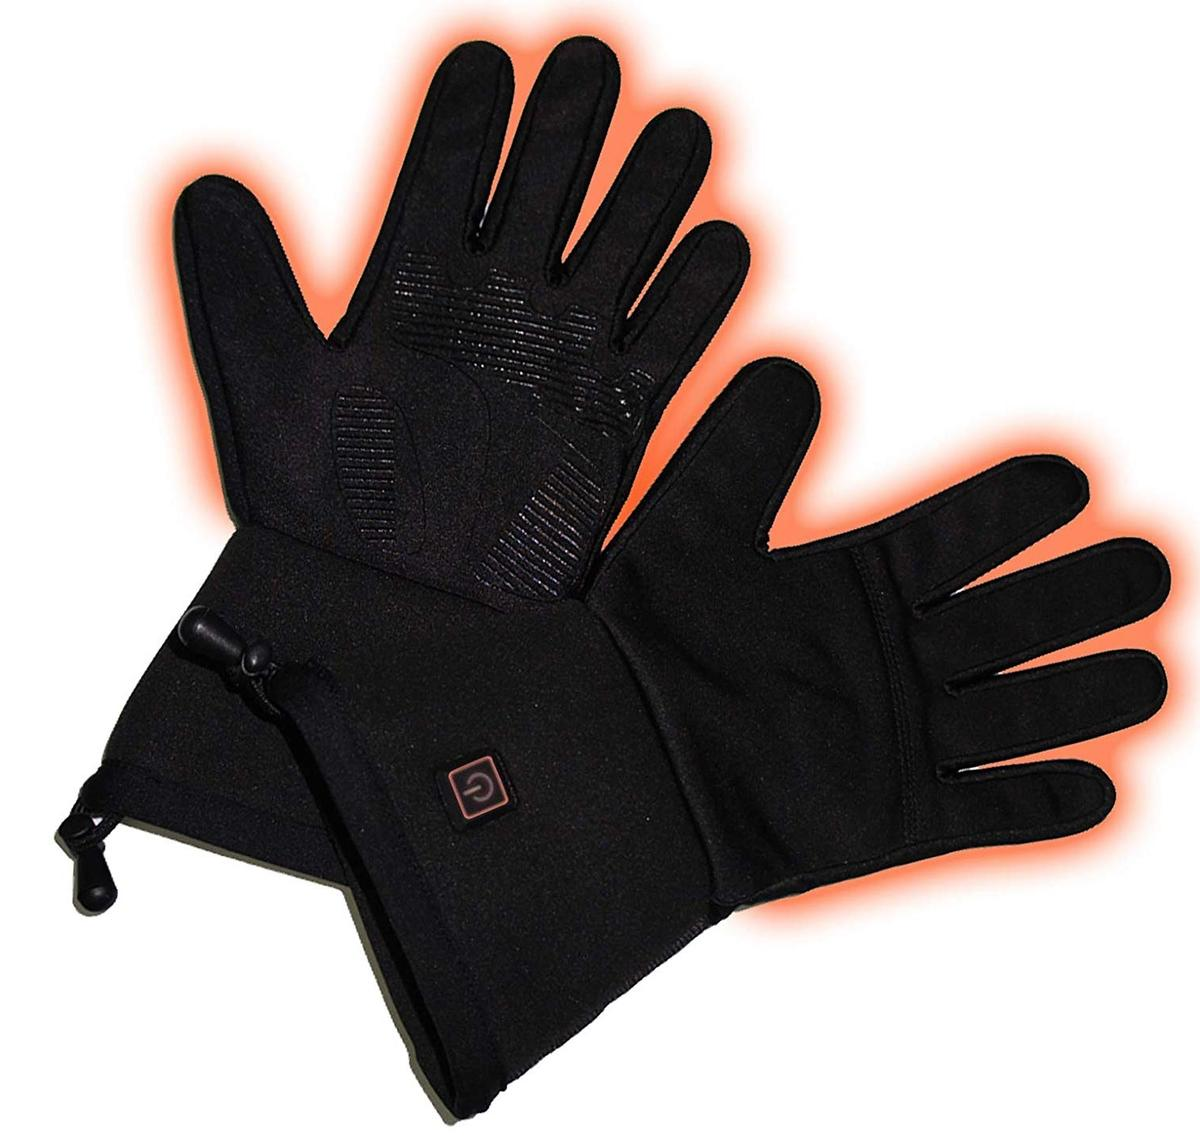 Heated Clothing Electric Clothing Heated Socks Heated Gloves >> Thermo Gloves Battery Heated Glove Liners